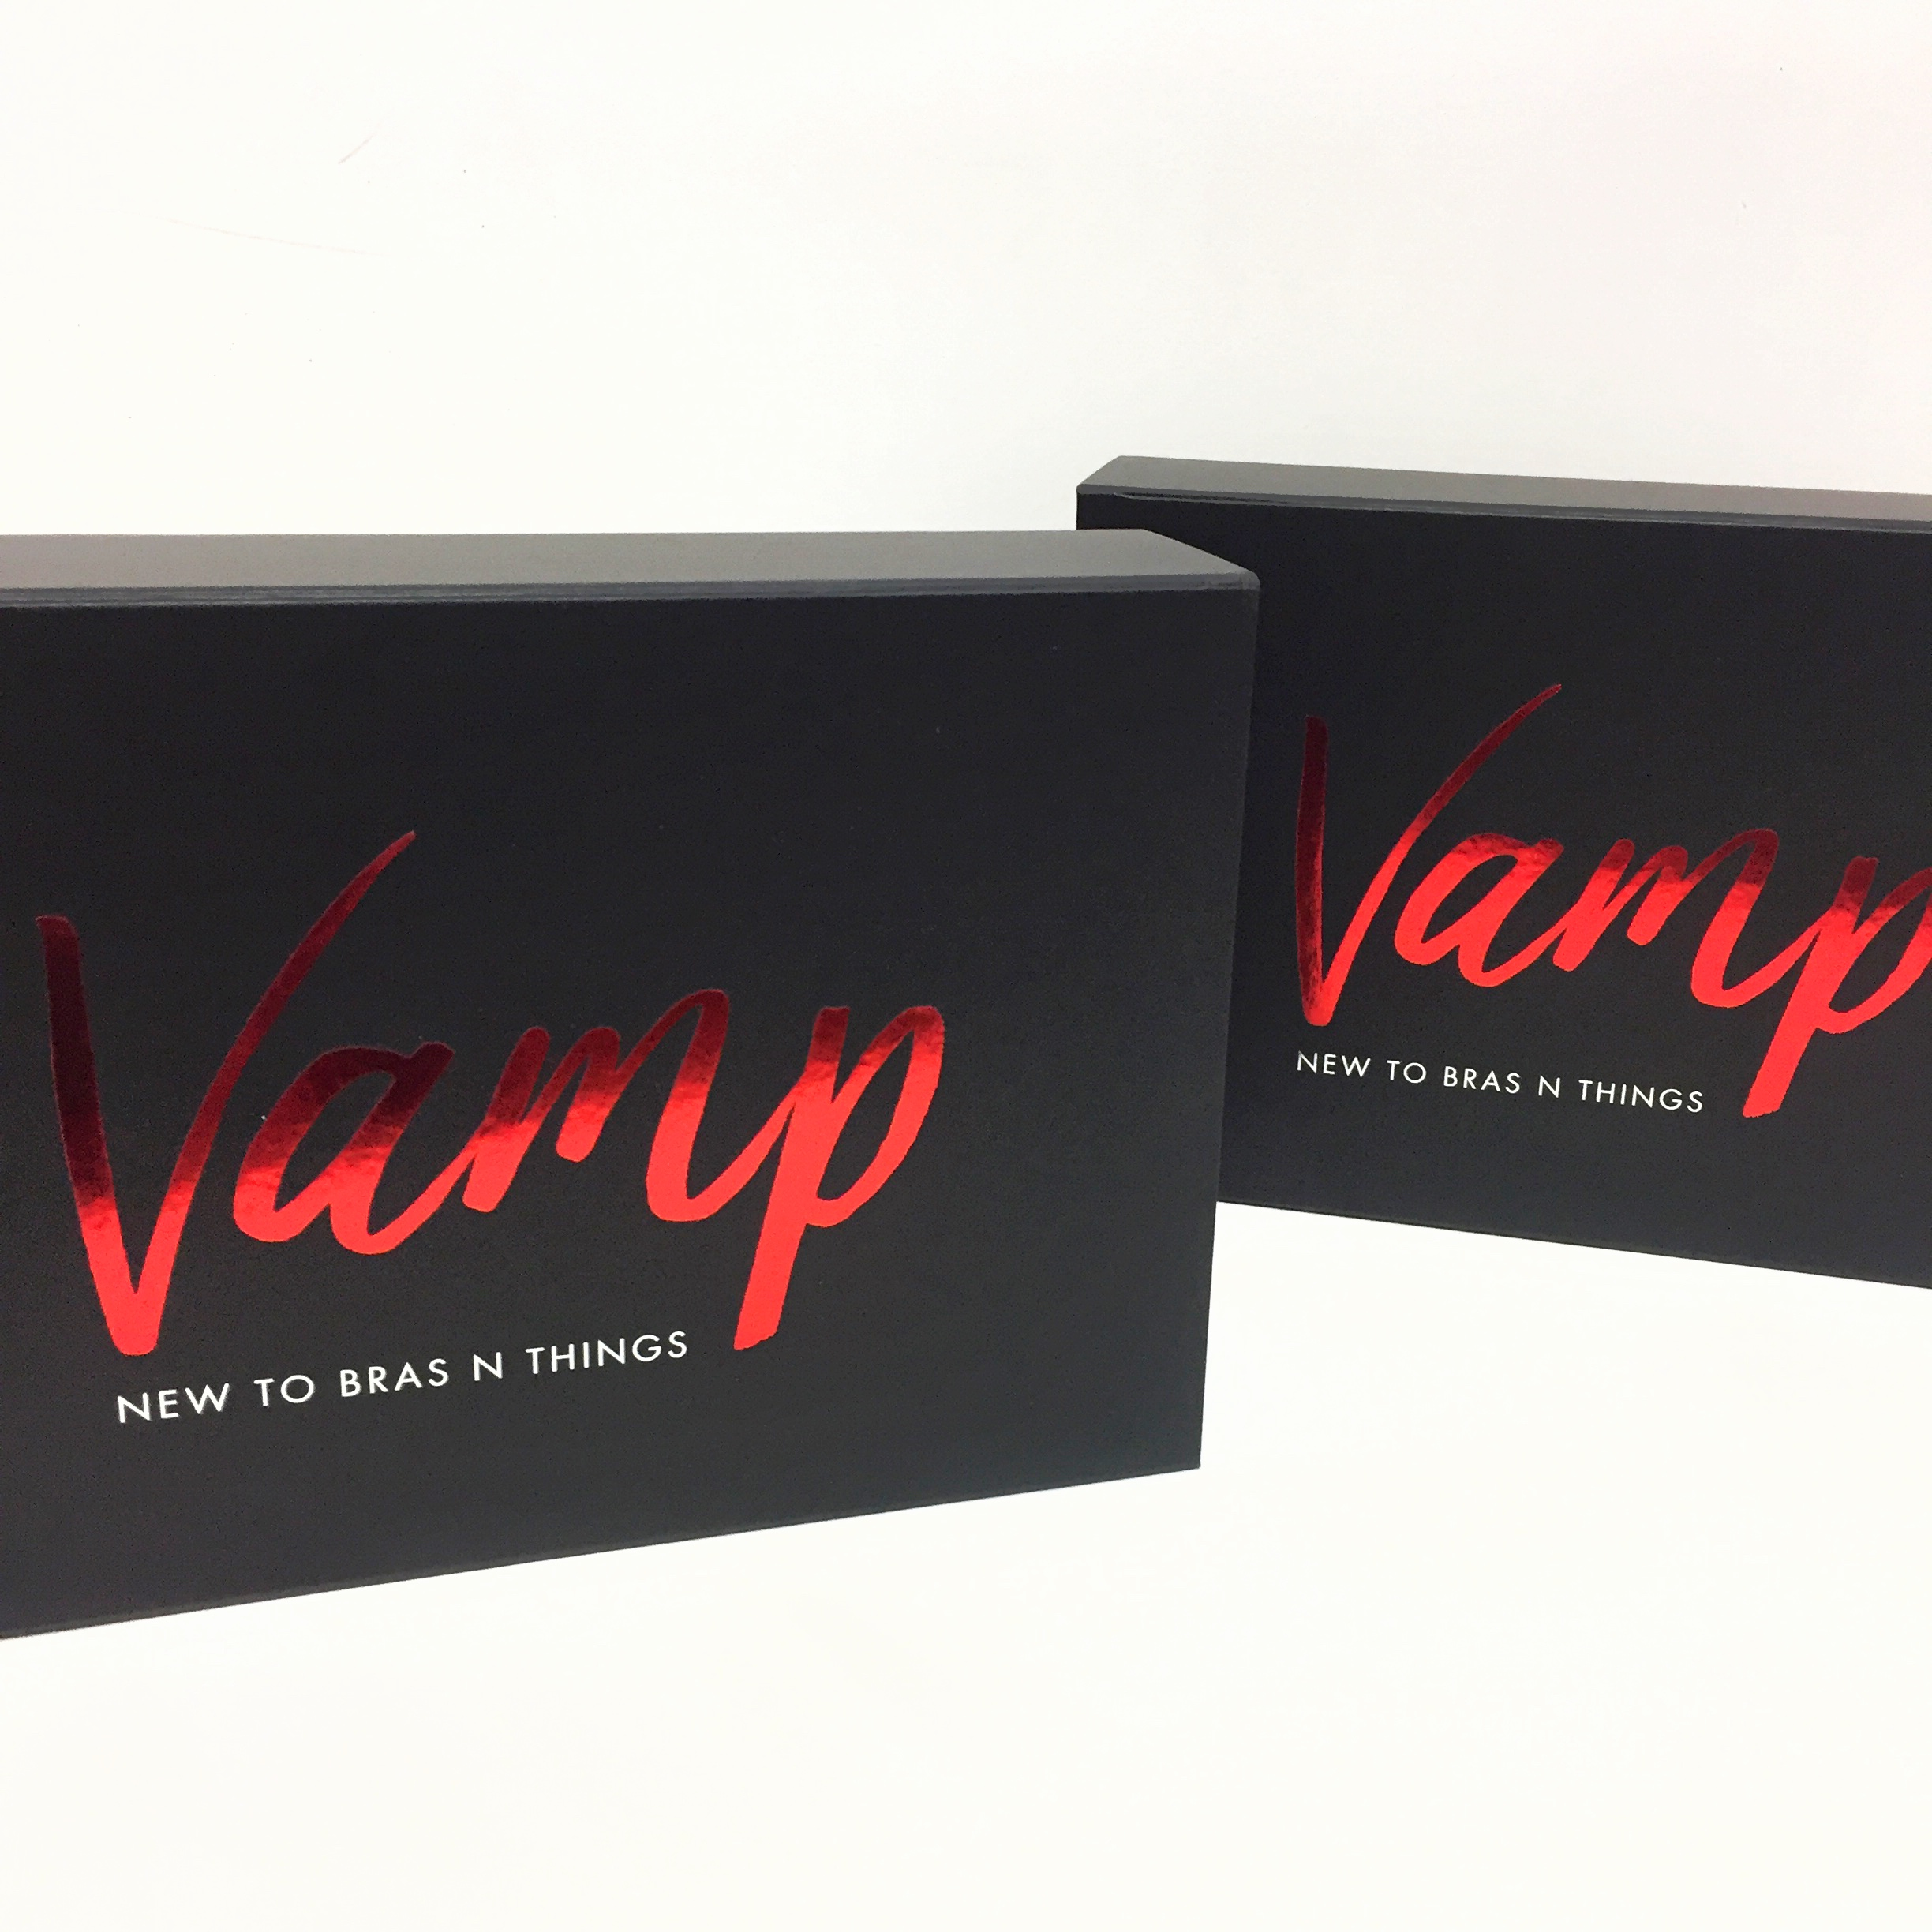 WE CREATED THESE VAMP MEDIA KITS